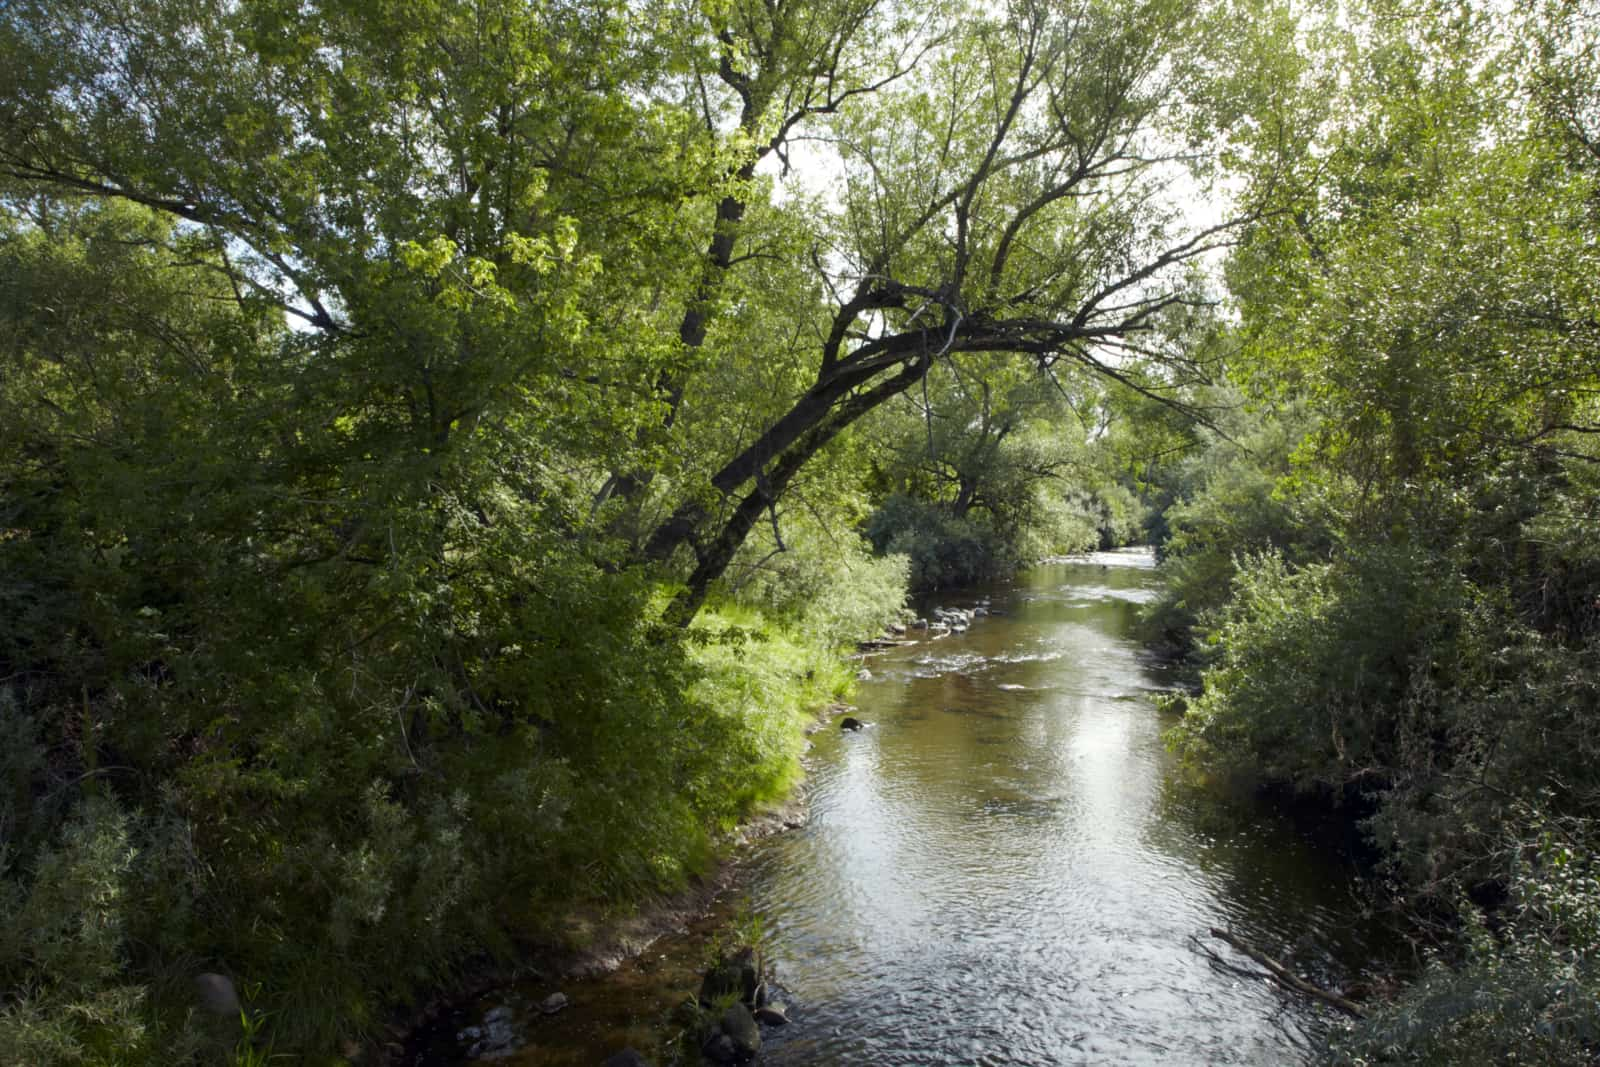 view of the river surrounded by lush green bushes and trees.